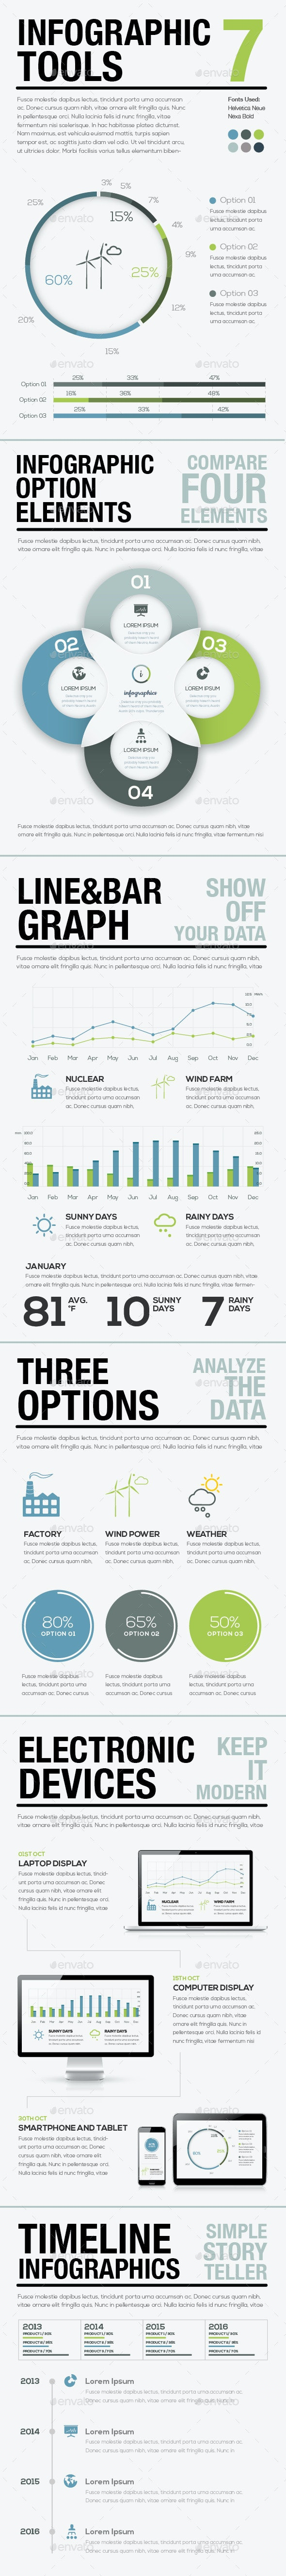 Infographic Tools 7 - Business Vector Elements for - Infographics